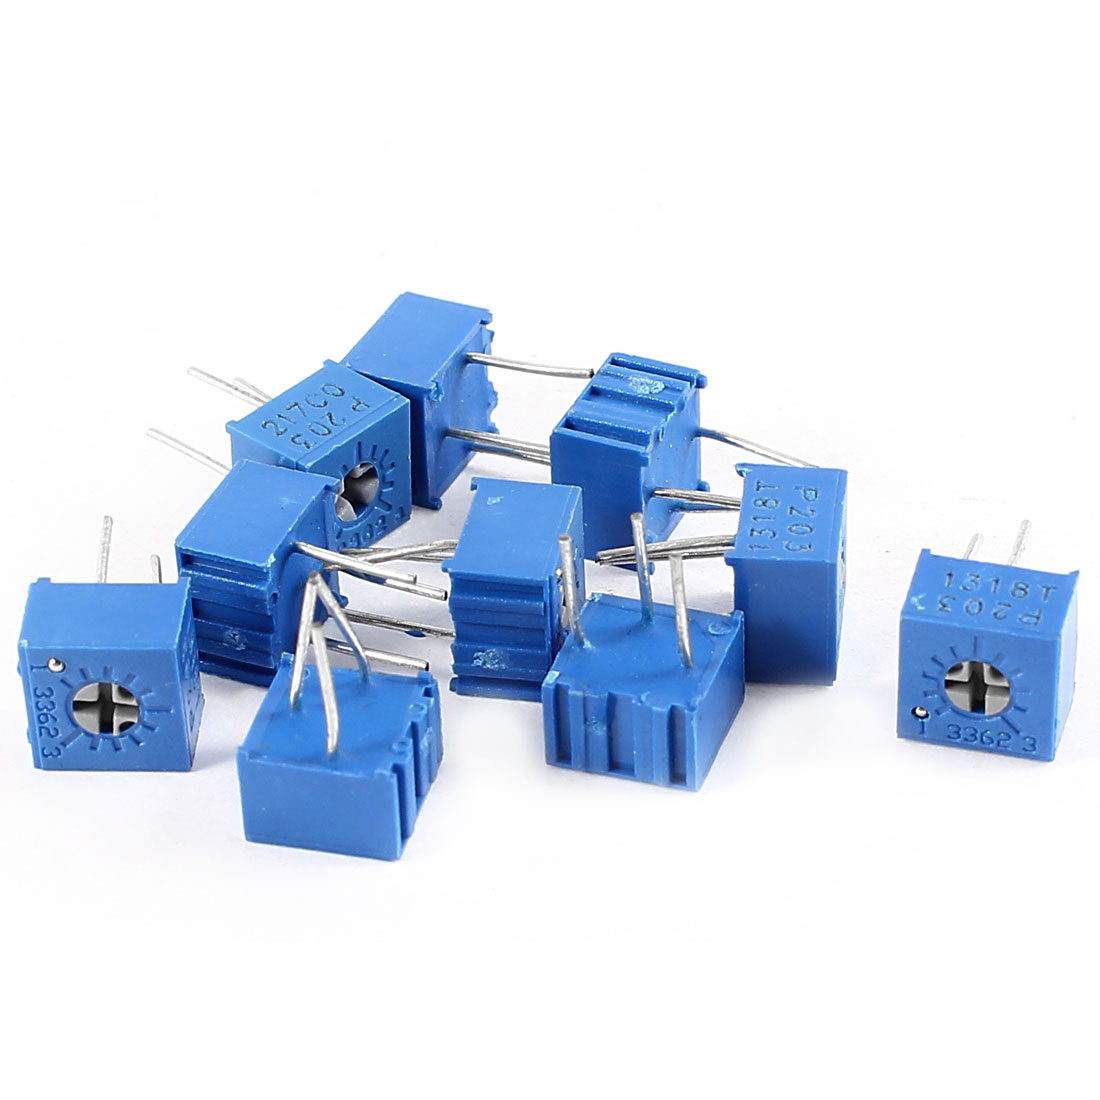 10Pcs 3362W-203 20K ohm 3 Pins High Precision Adjustable Resistor Trim Pot Potentiometer Trimmer